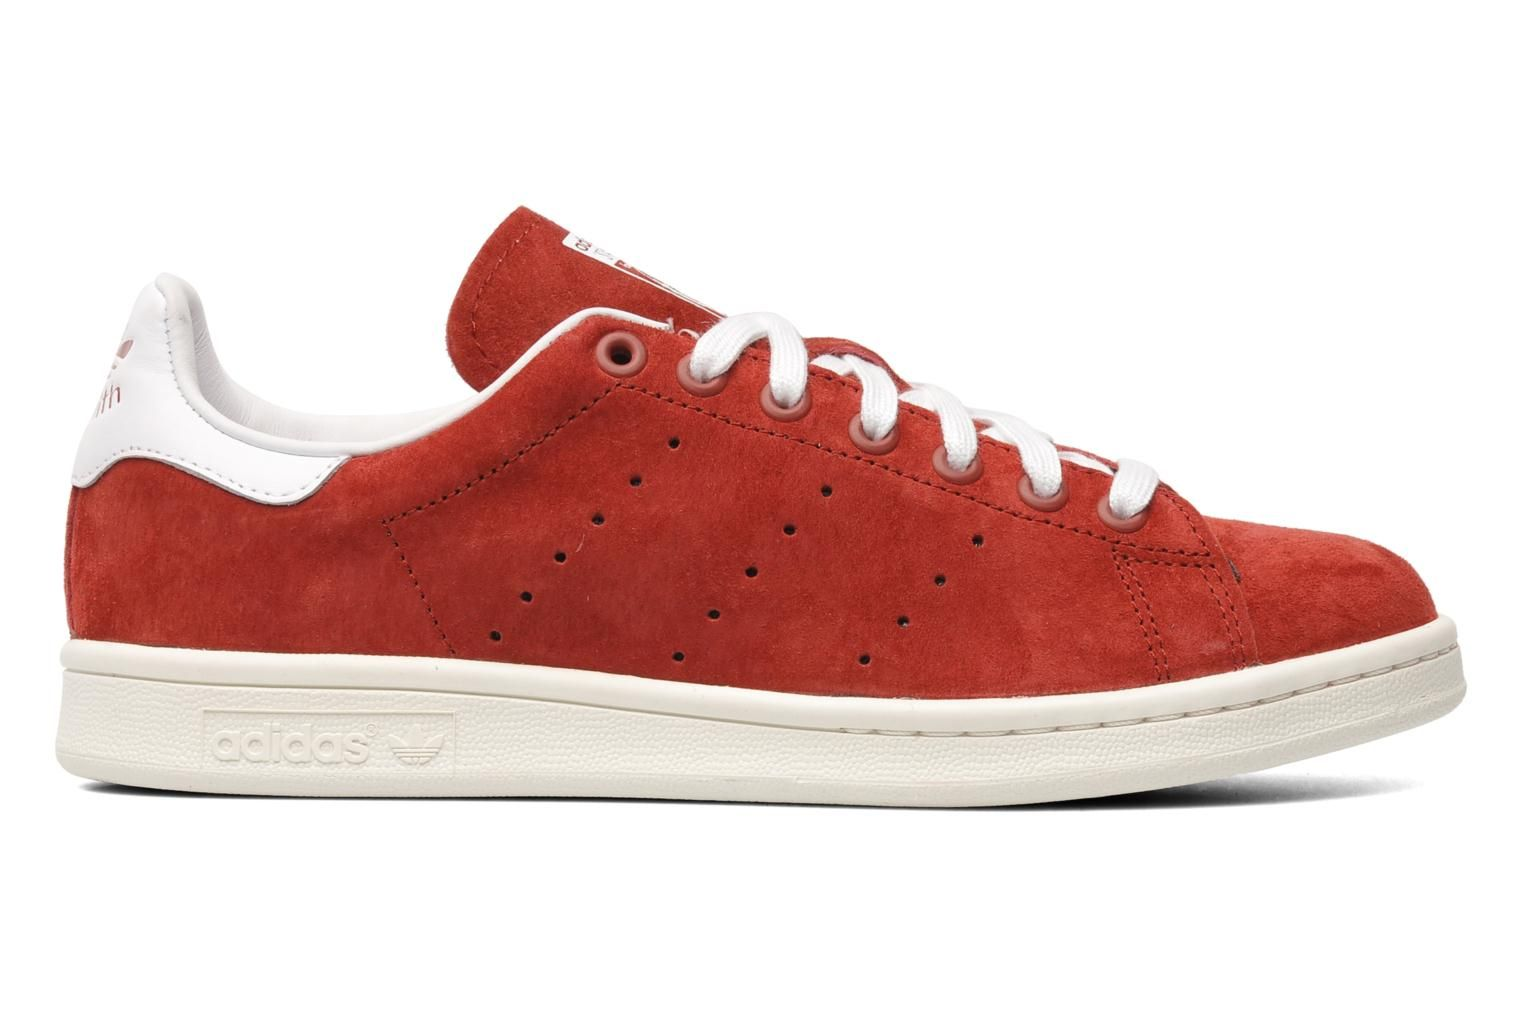 le dernier 09333 f0bb5 Stan Smith | timeless classic styles for men | Adidas ...